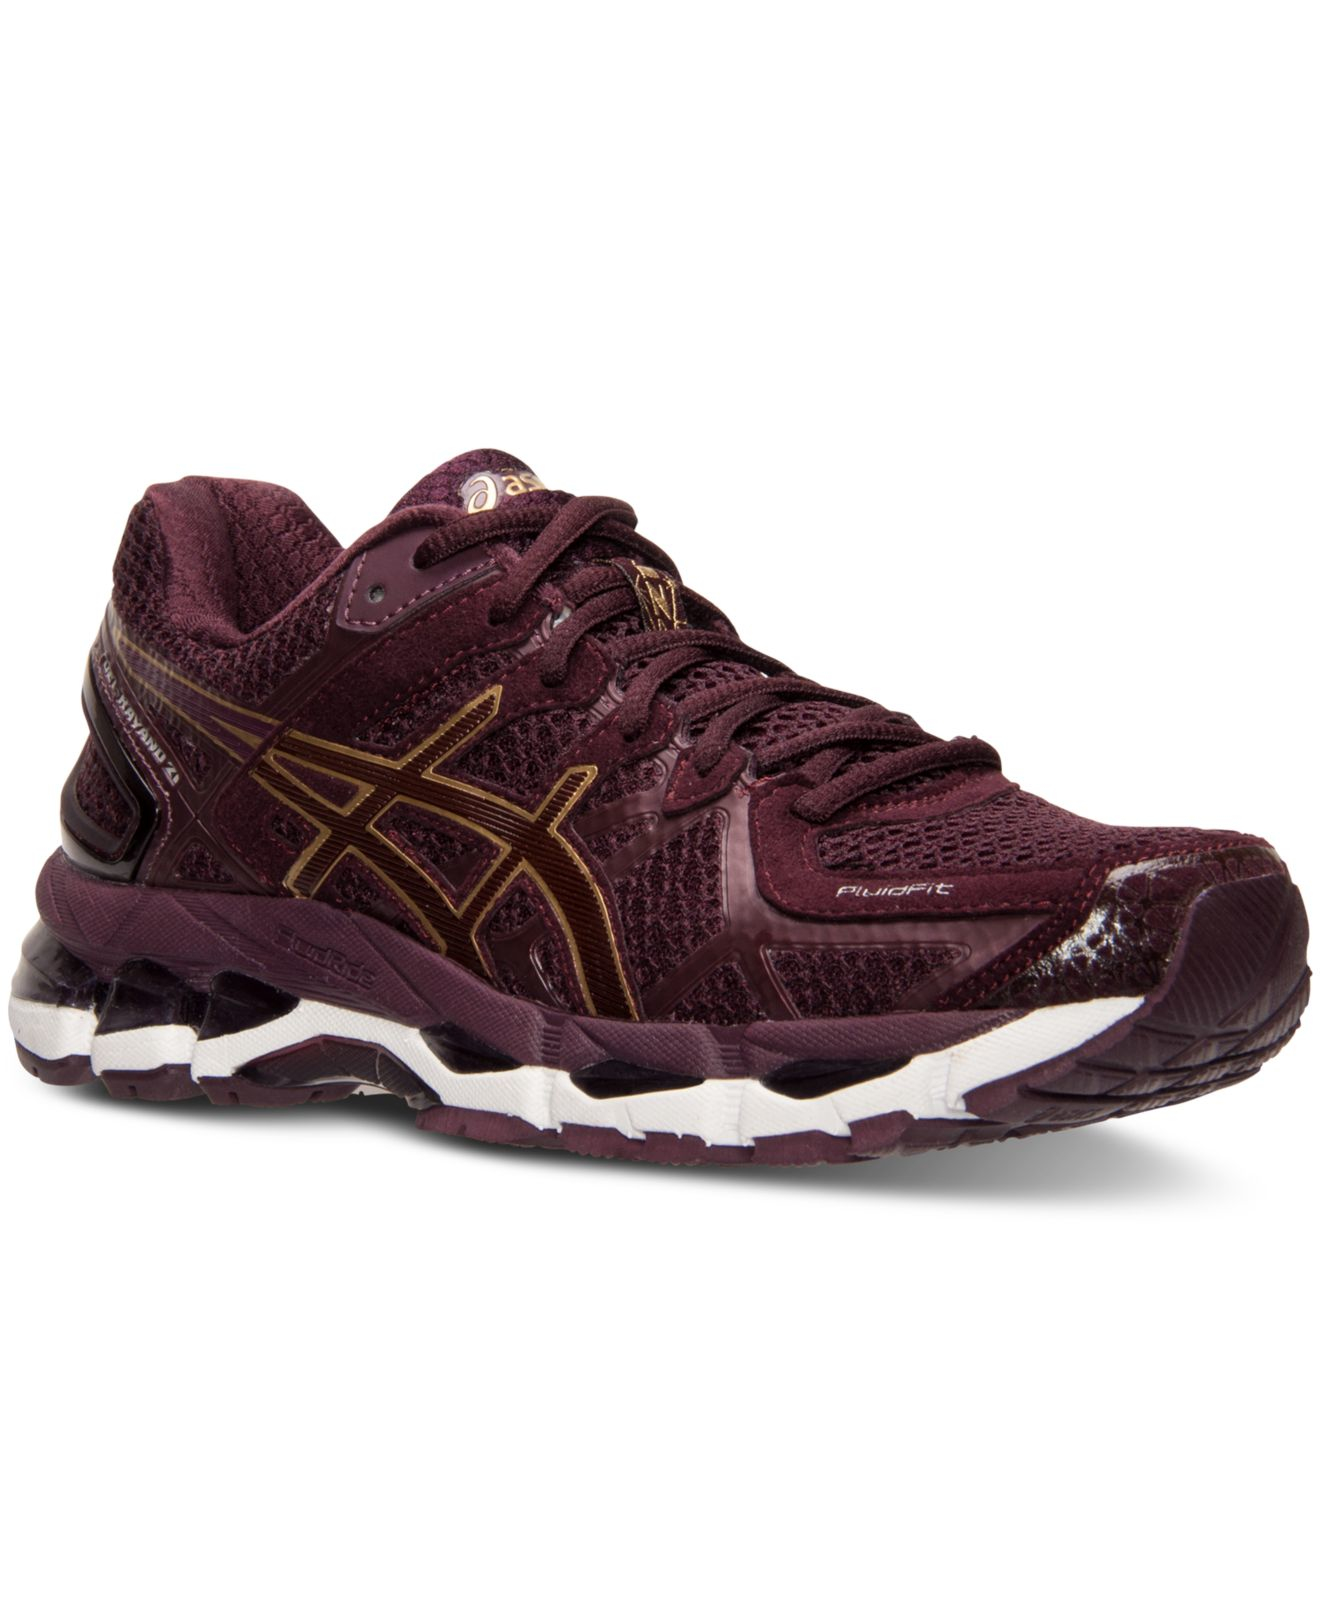 asics women 39 s gel kayano 21 running sneakers from finish line in purple lyst. Black Bedroom Furniture Sets. Home Design Ideas